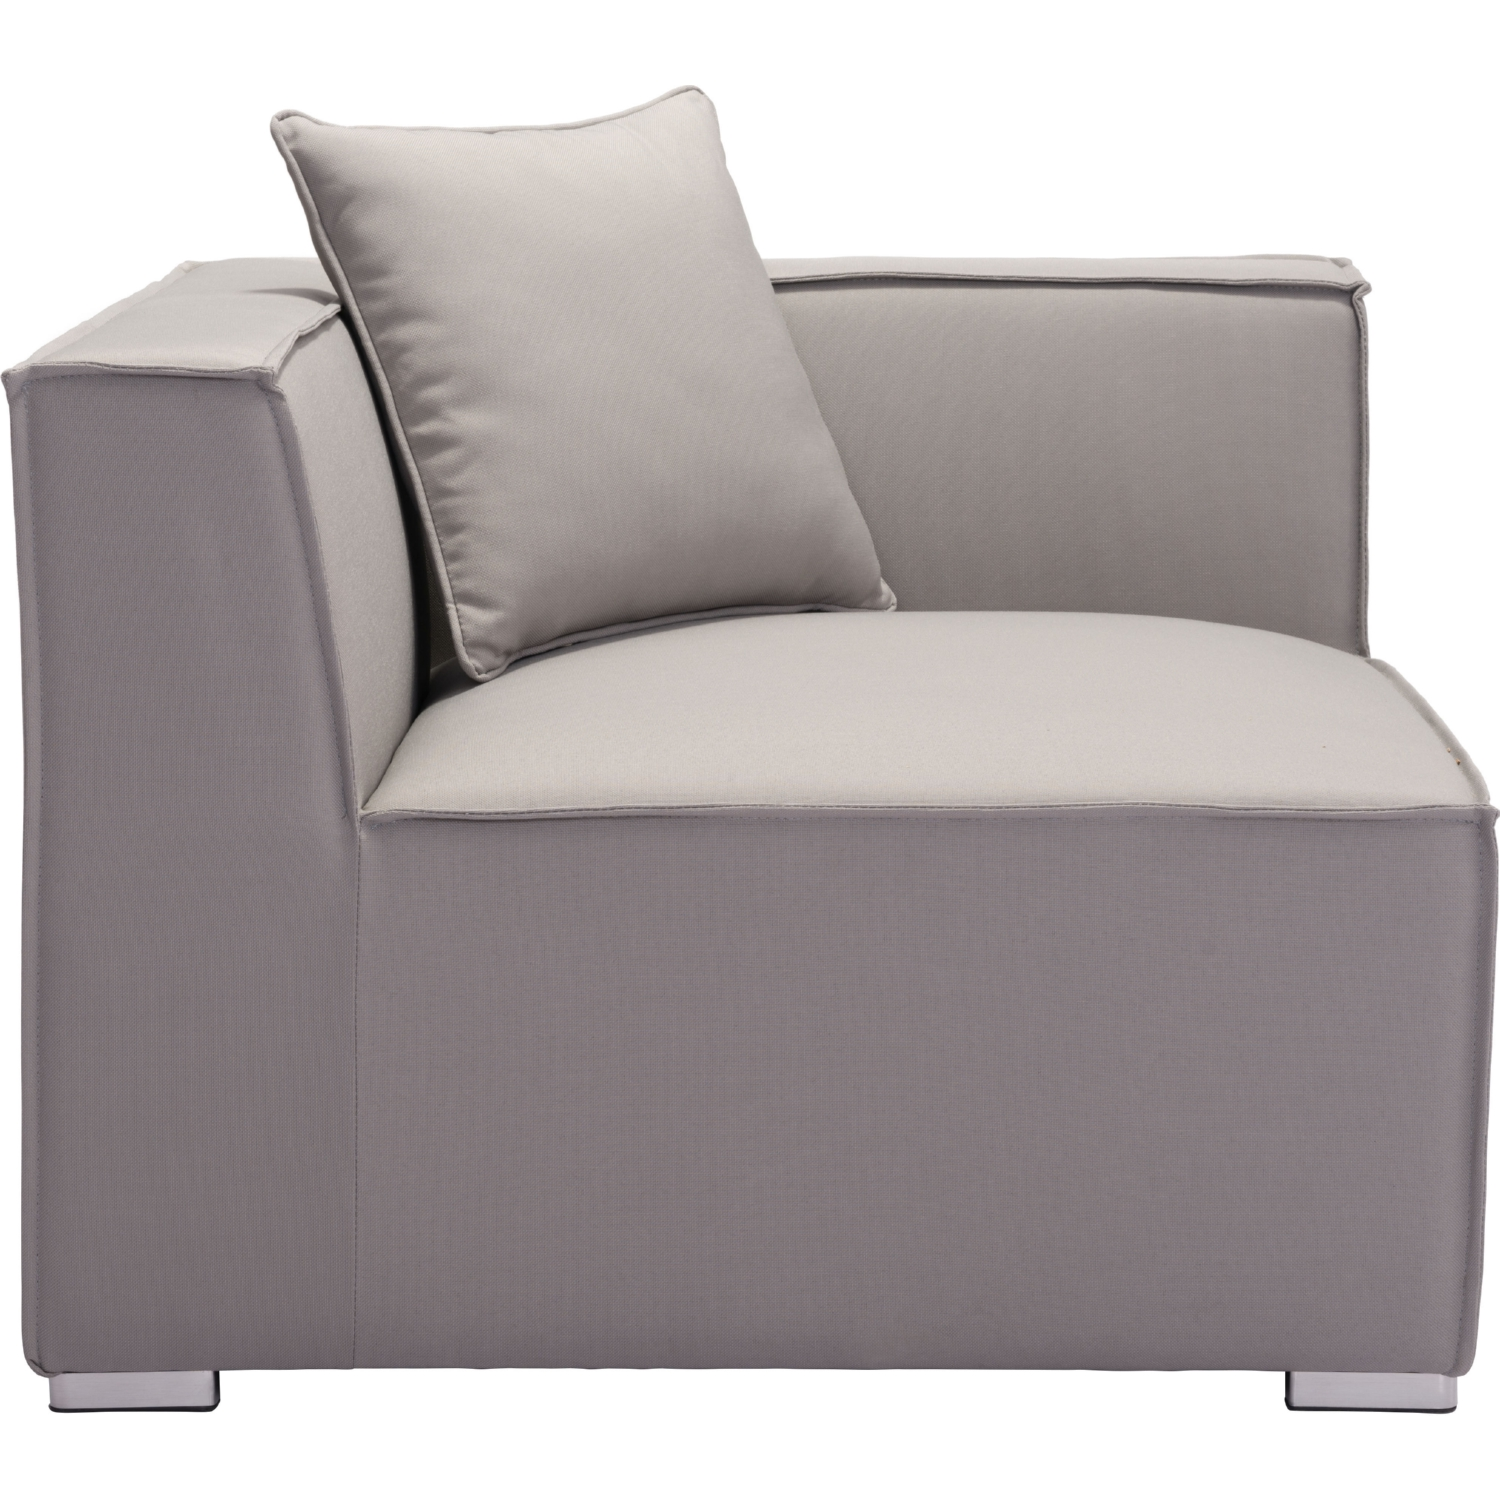 Fiji Outdoor Corner Sectional Chair in Gray Sunproof Fabric  sc 1 st  Dynamic Home Decor : corner sectional chair - Sectionals, Sofas & Couches